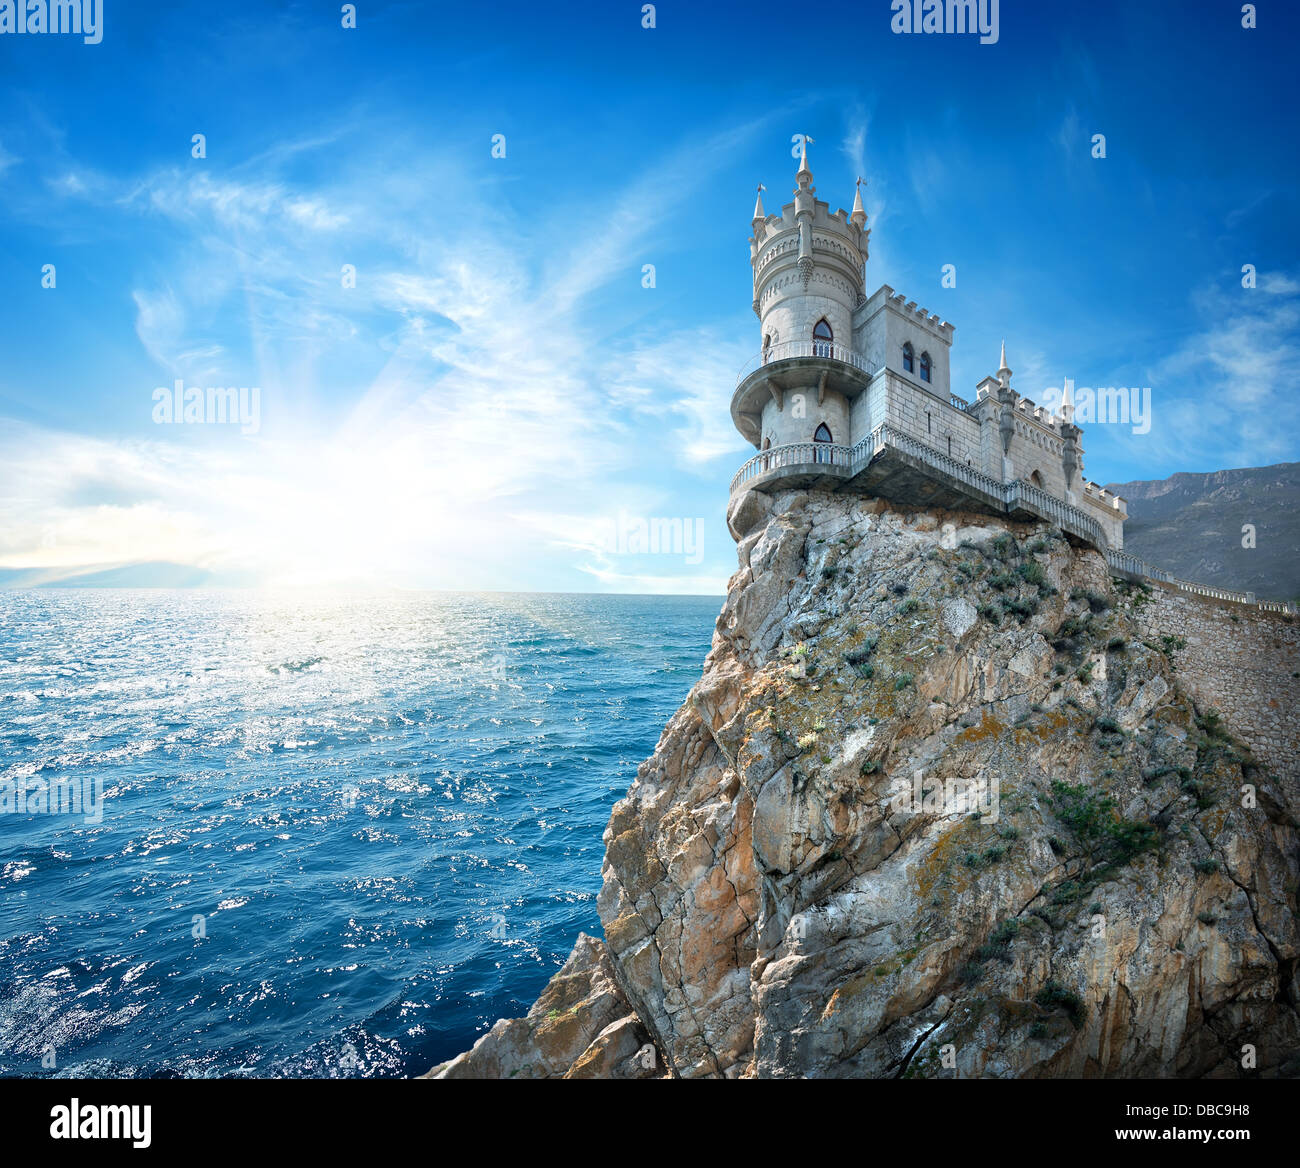 Swallow's Nest Castle on the rock in the Black sea - Stock Image